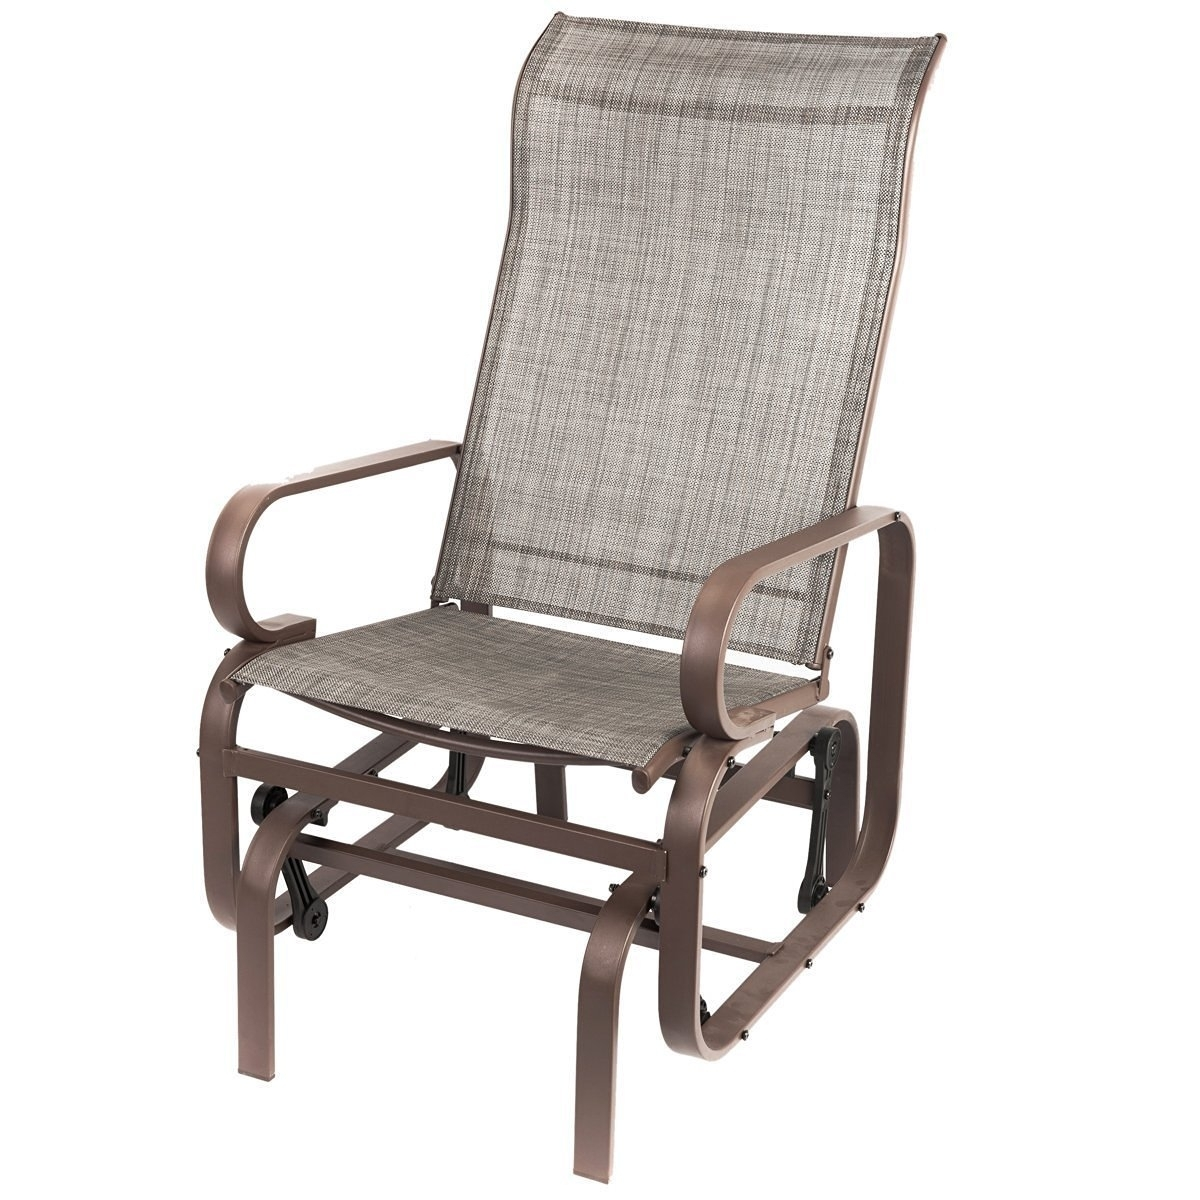 Naturefun Outdoor Patio Rocker Chair, Balcony Glider Rocking Lounge For Rocking Chairs For Patio (#10 of 15)